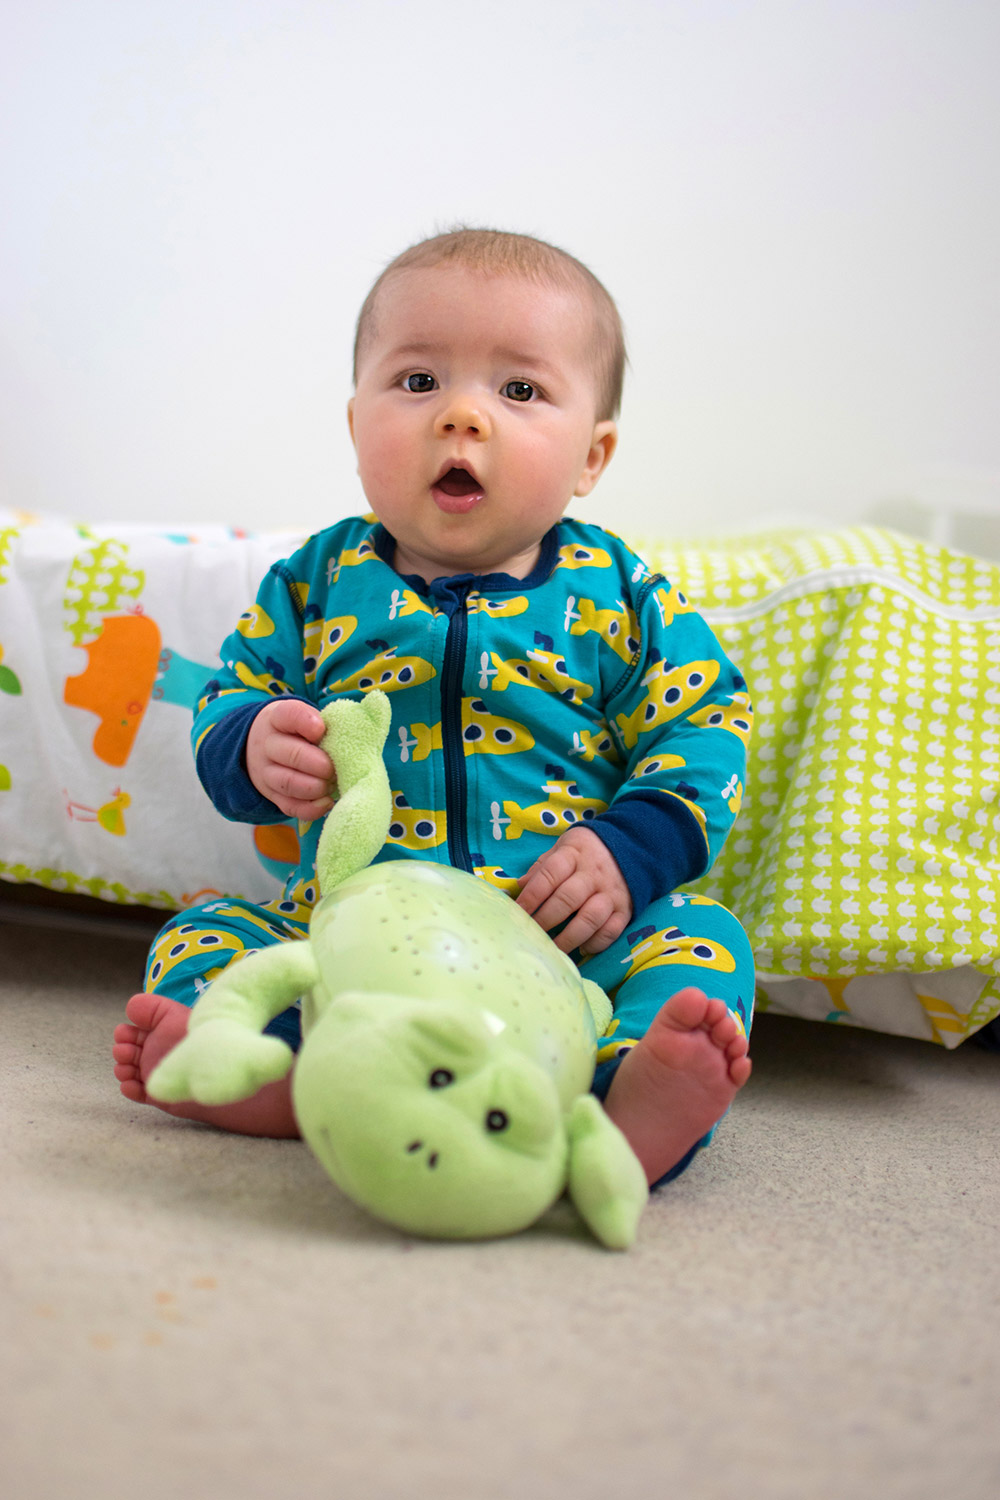 Baby Jesse Blue at 7 months old - Baby boy looking up at camera laughing and smiling wearing Frugi houses sleepsuit playing with Grimms rainbow tower